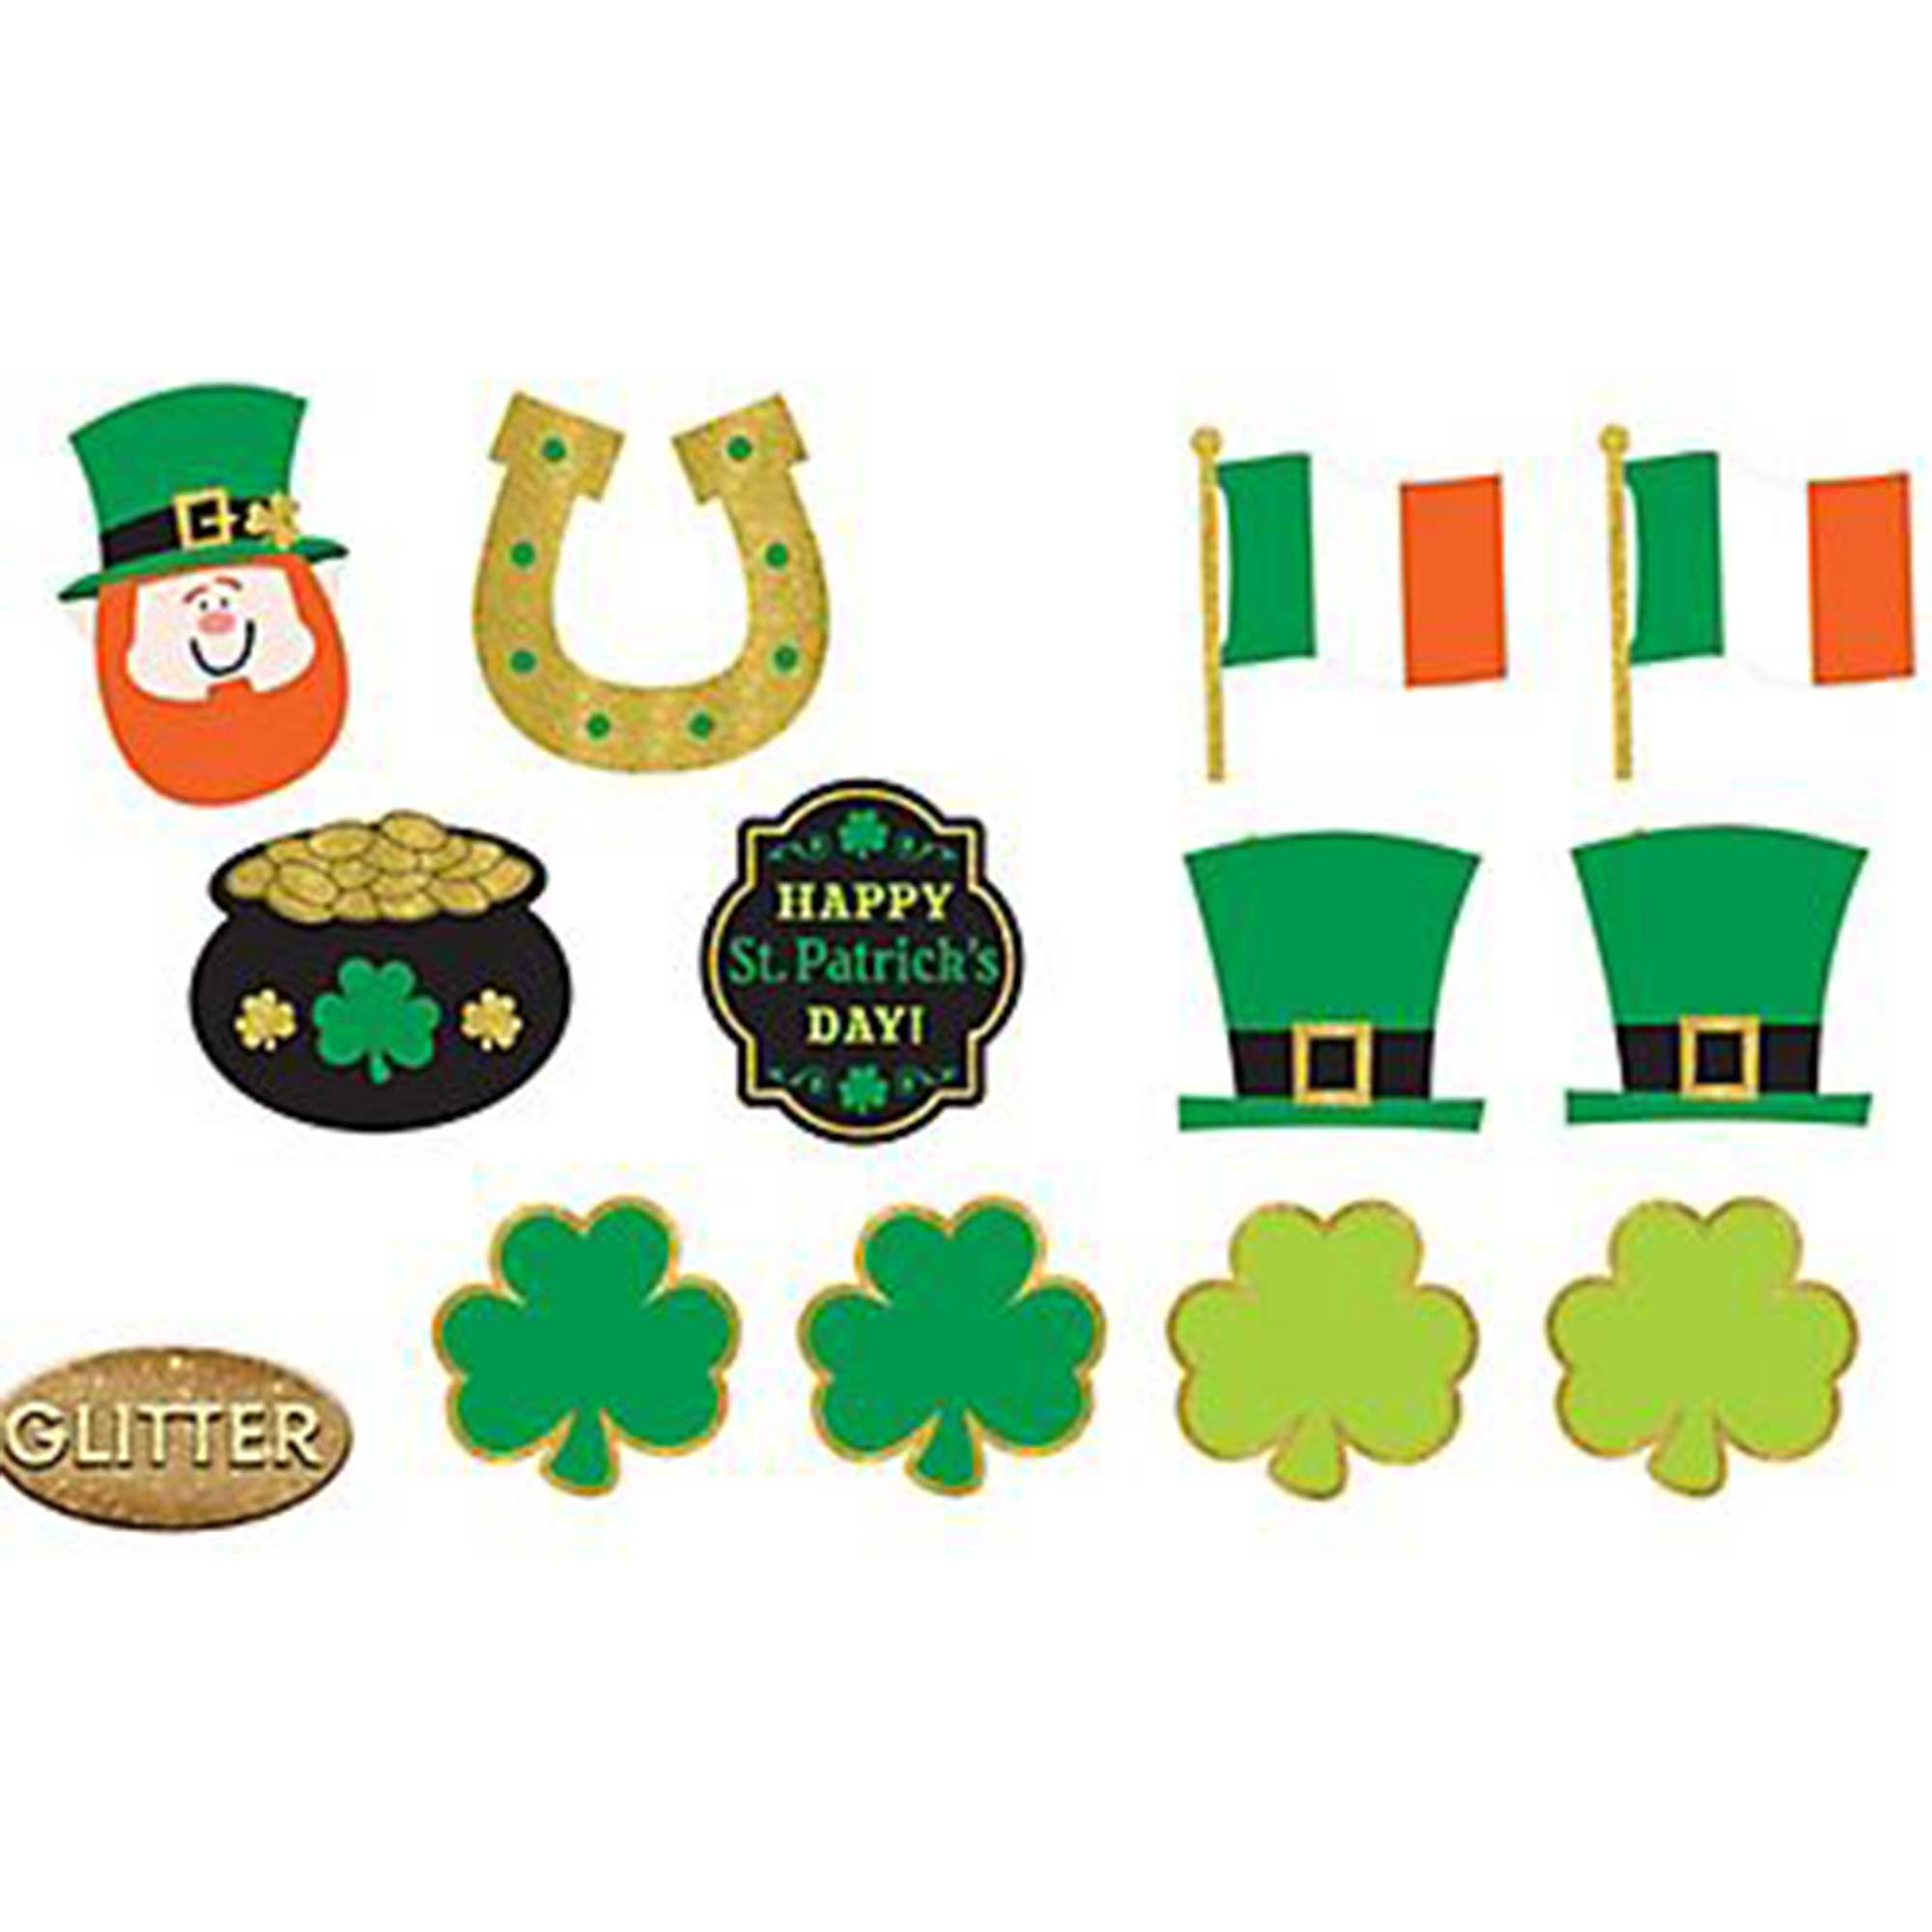 Happy St Patrick's Day Assorted Glittered Cutouts